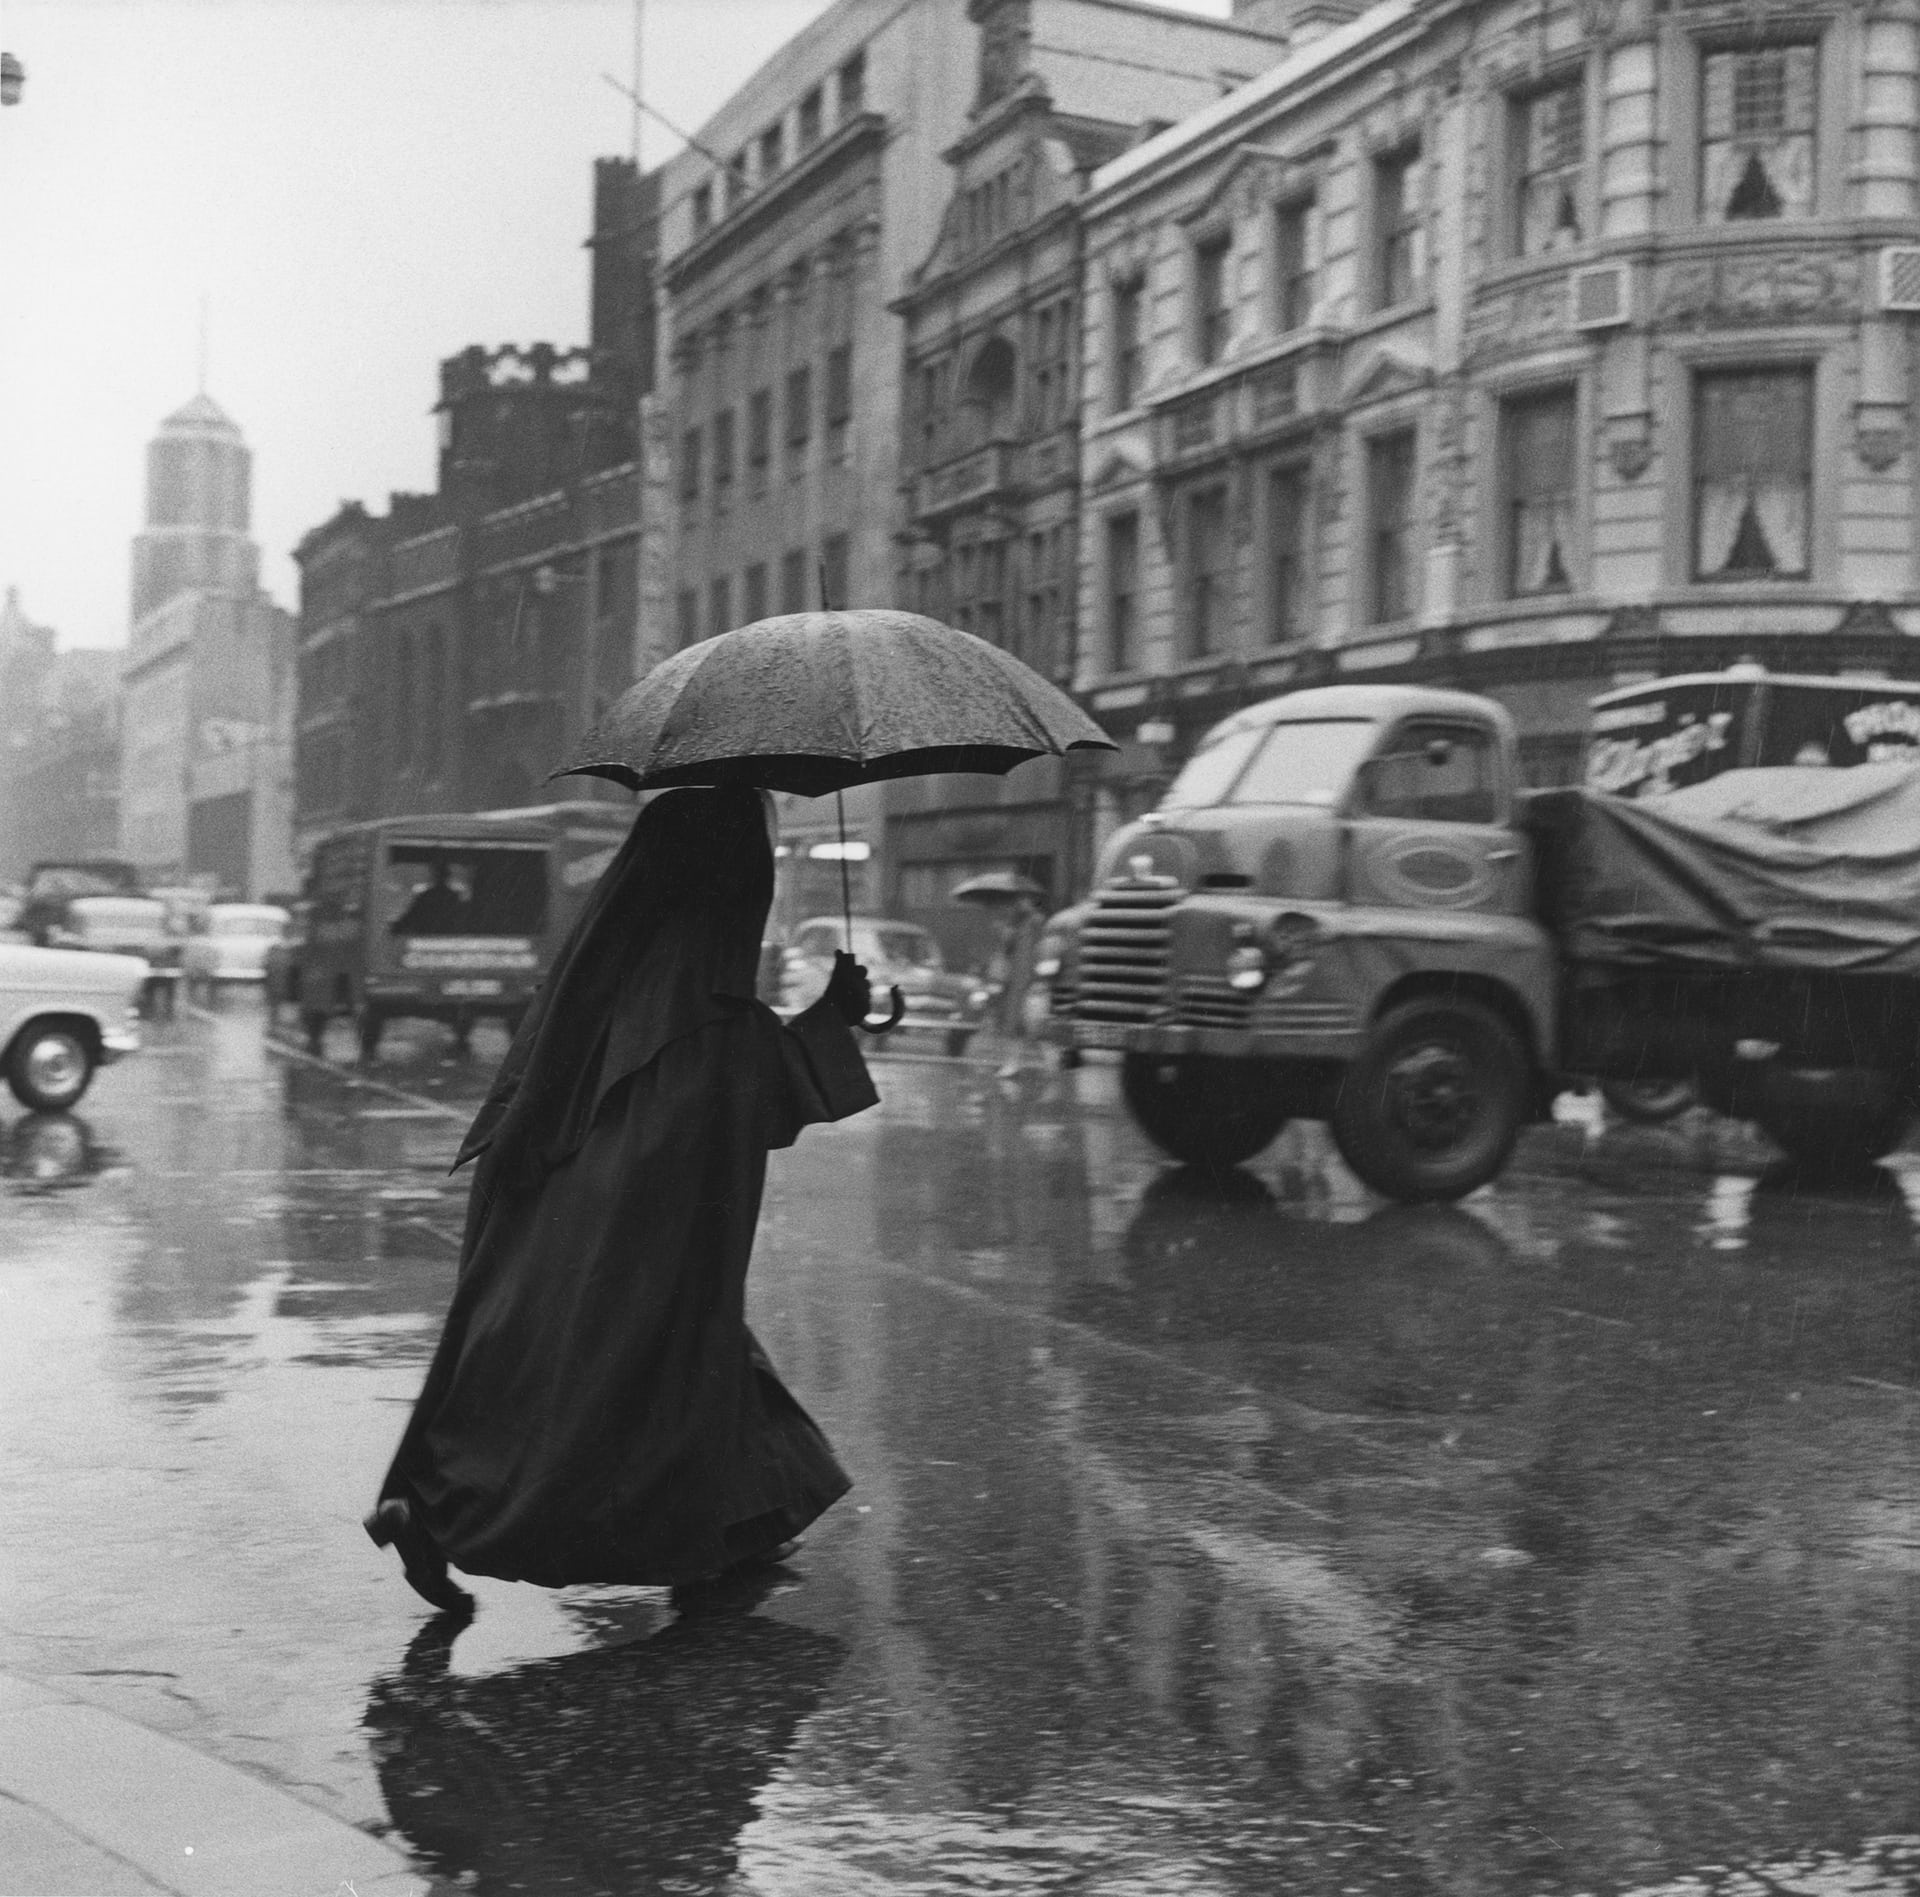 Nun With a Brolly, Salford, undated